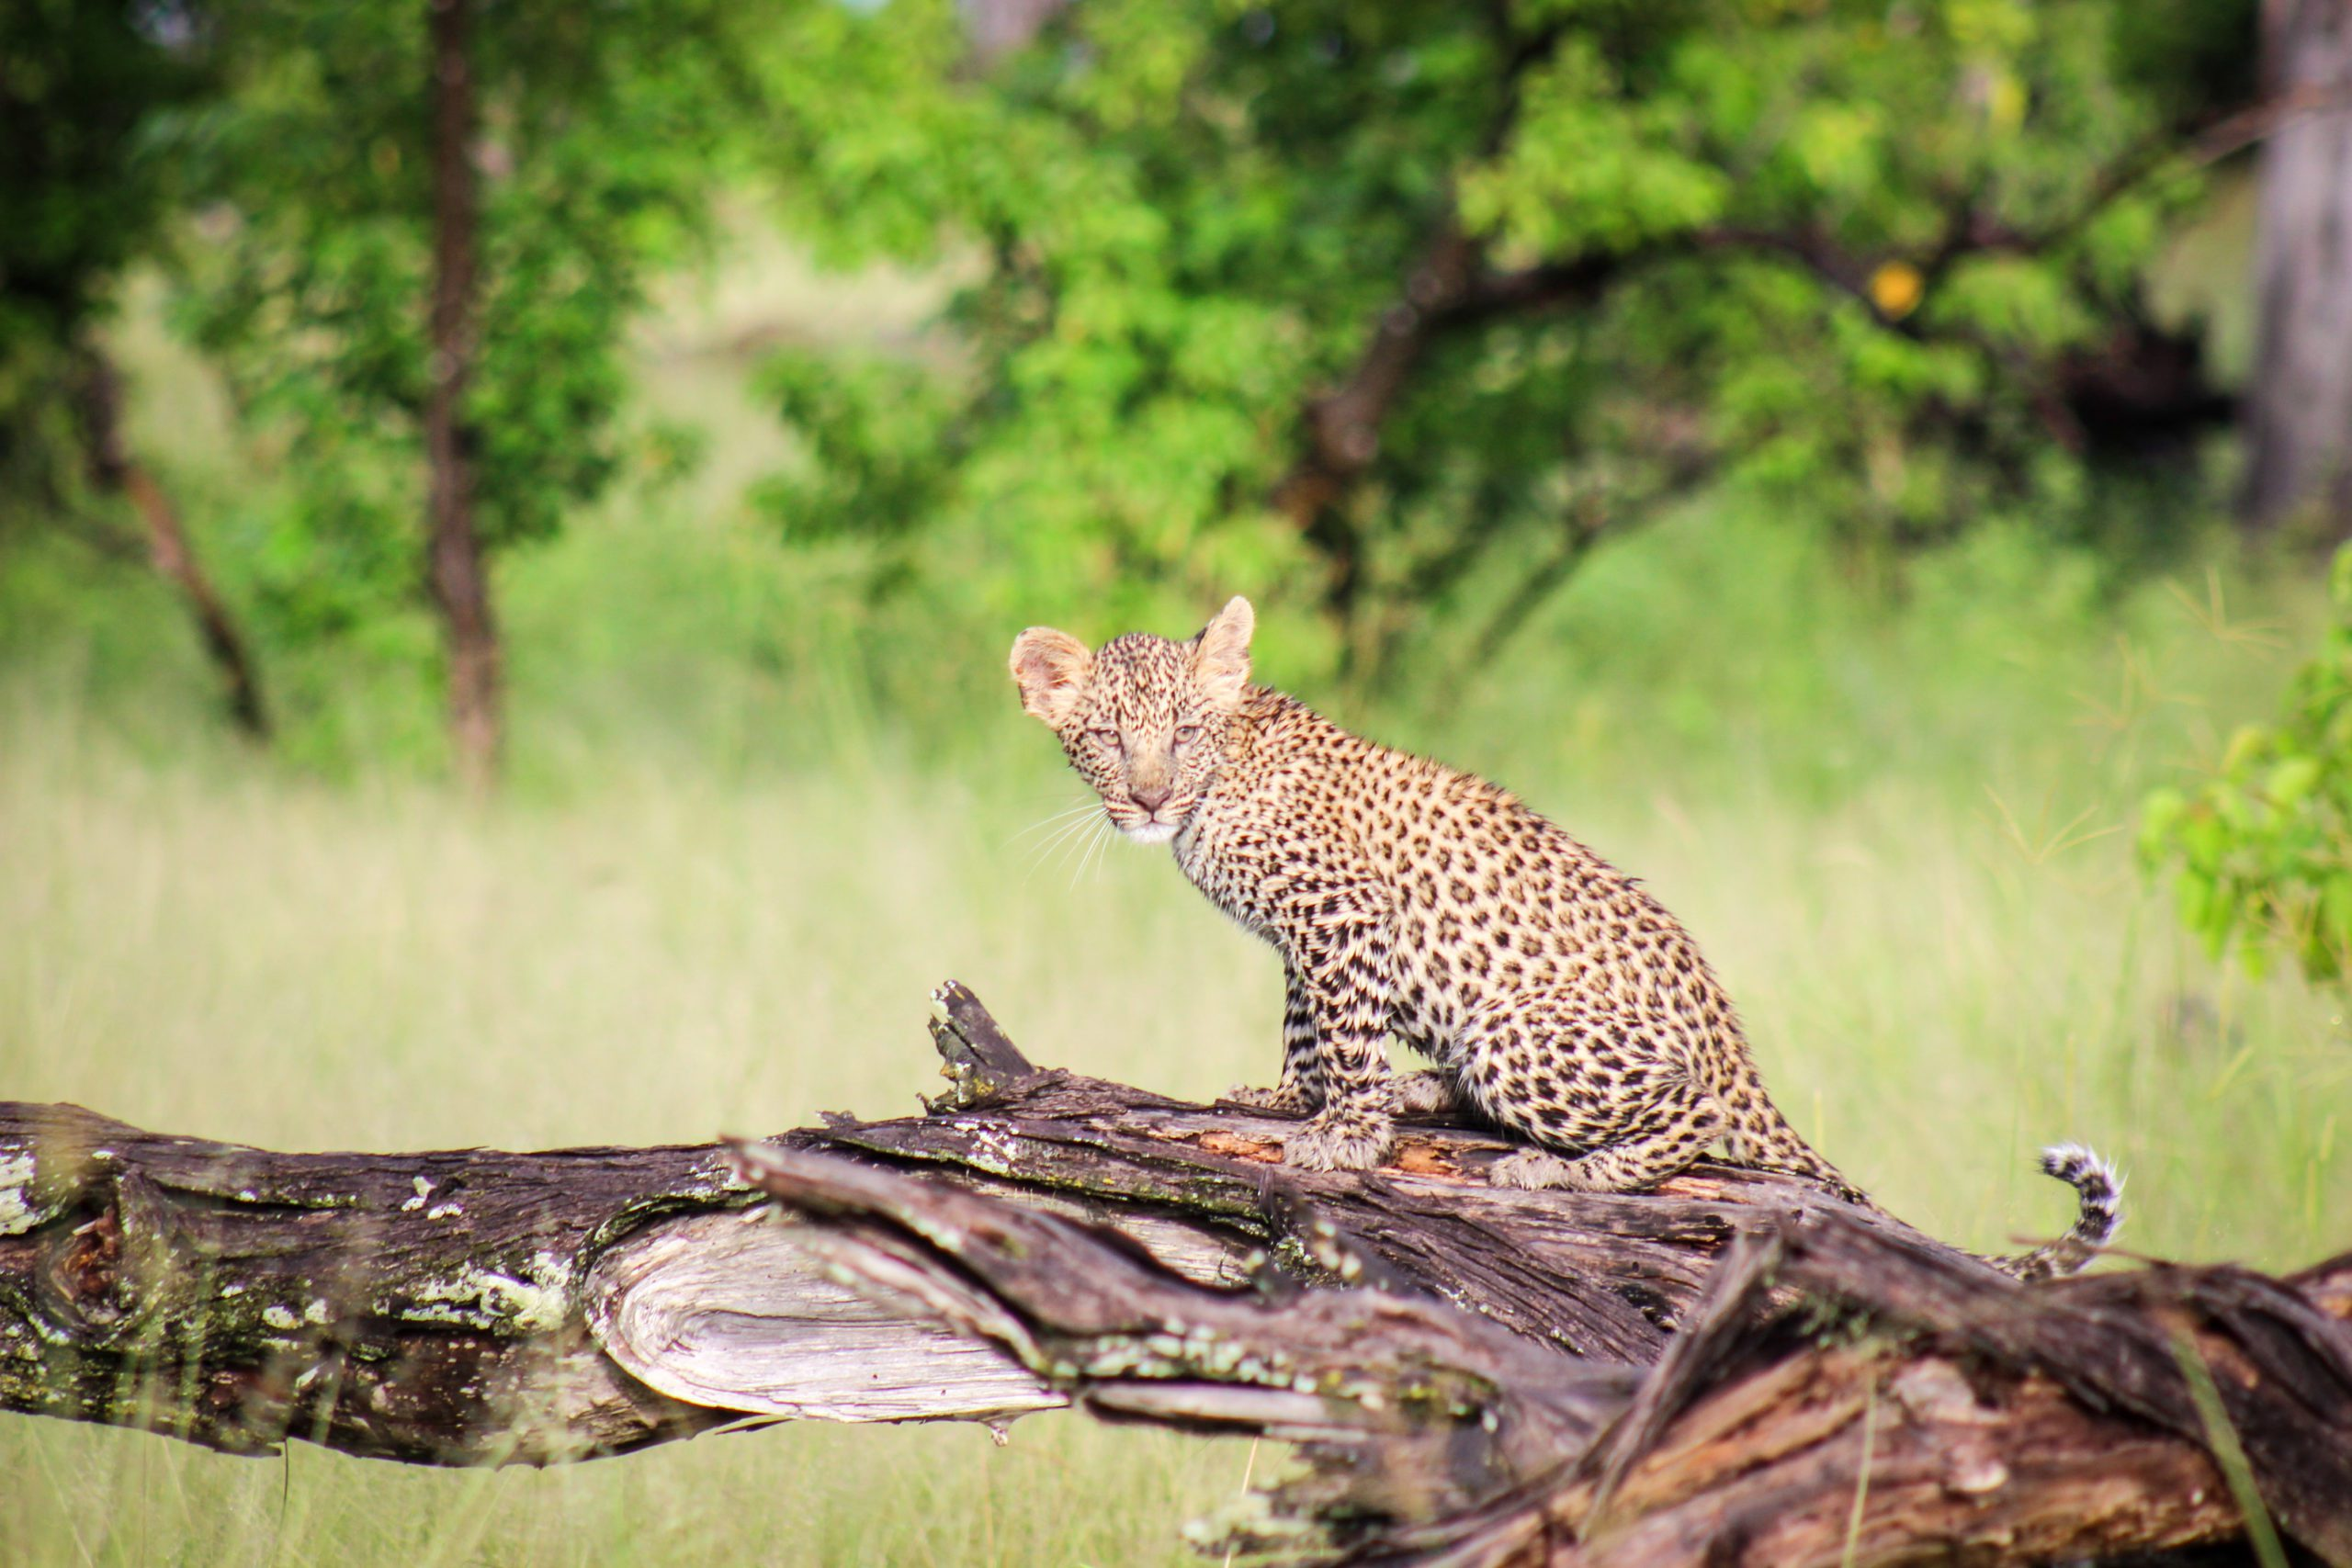 Baby Leopard sitting on a tree branch